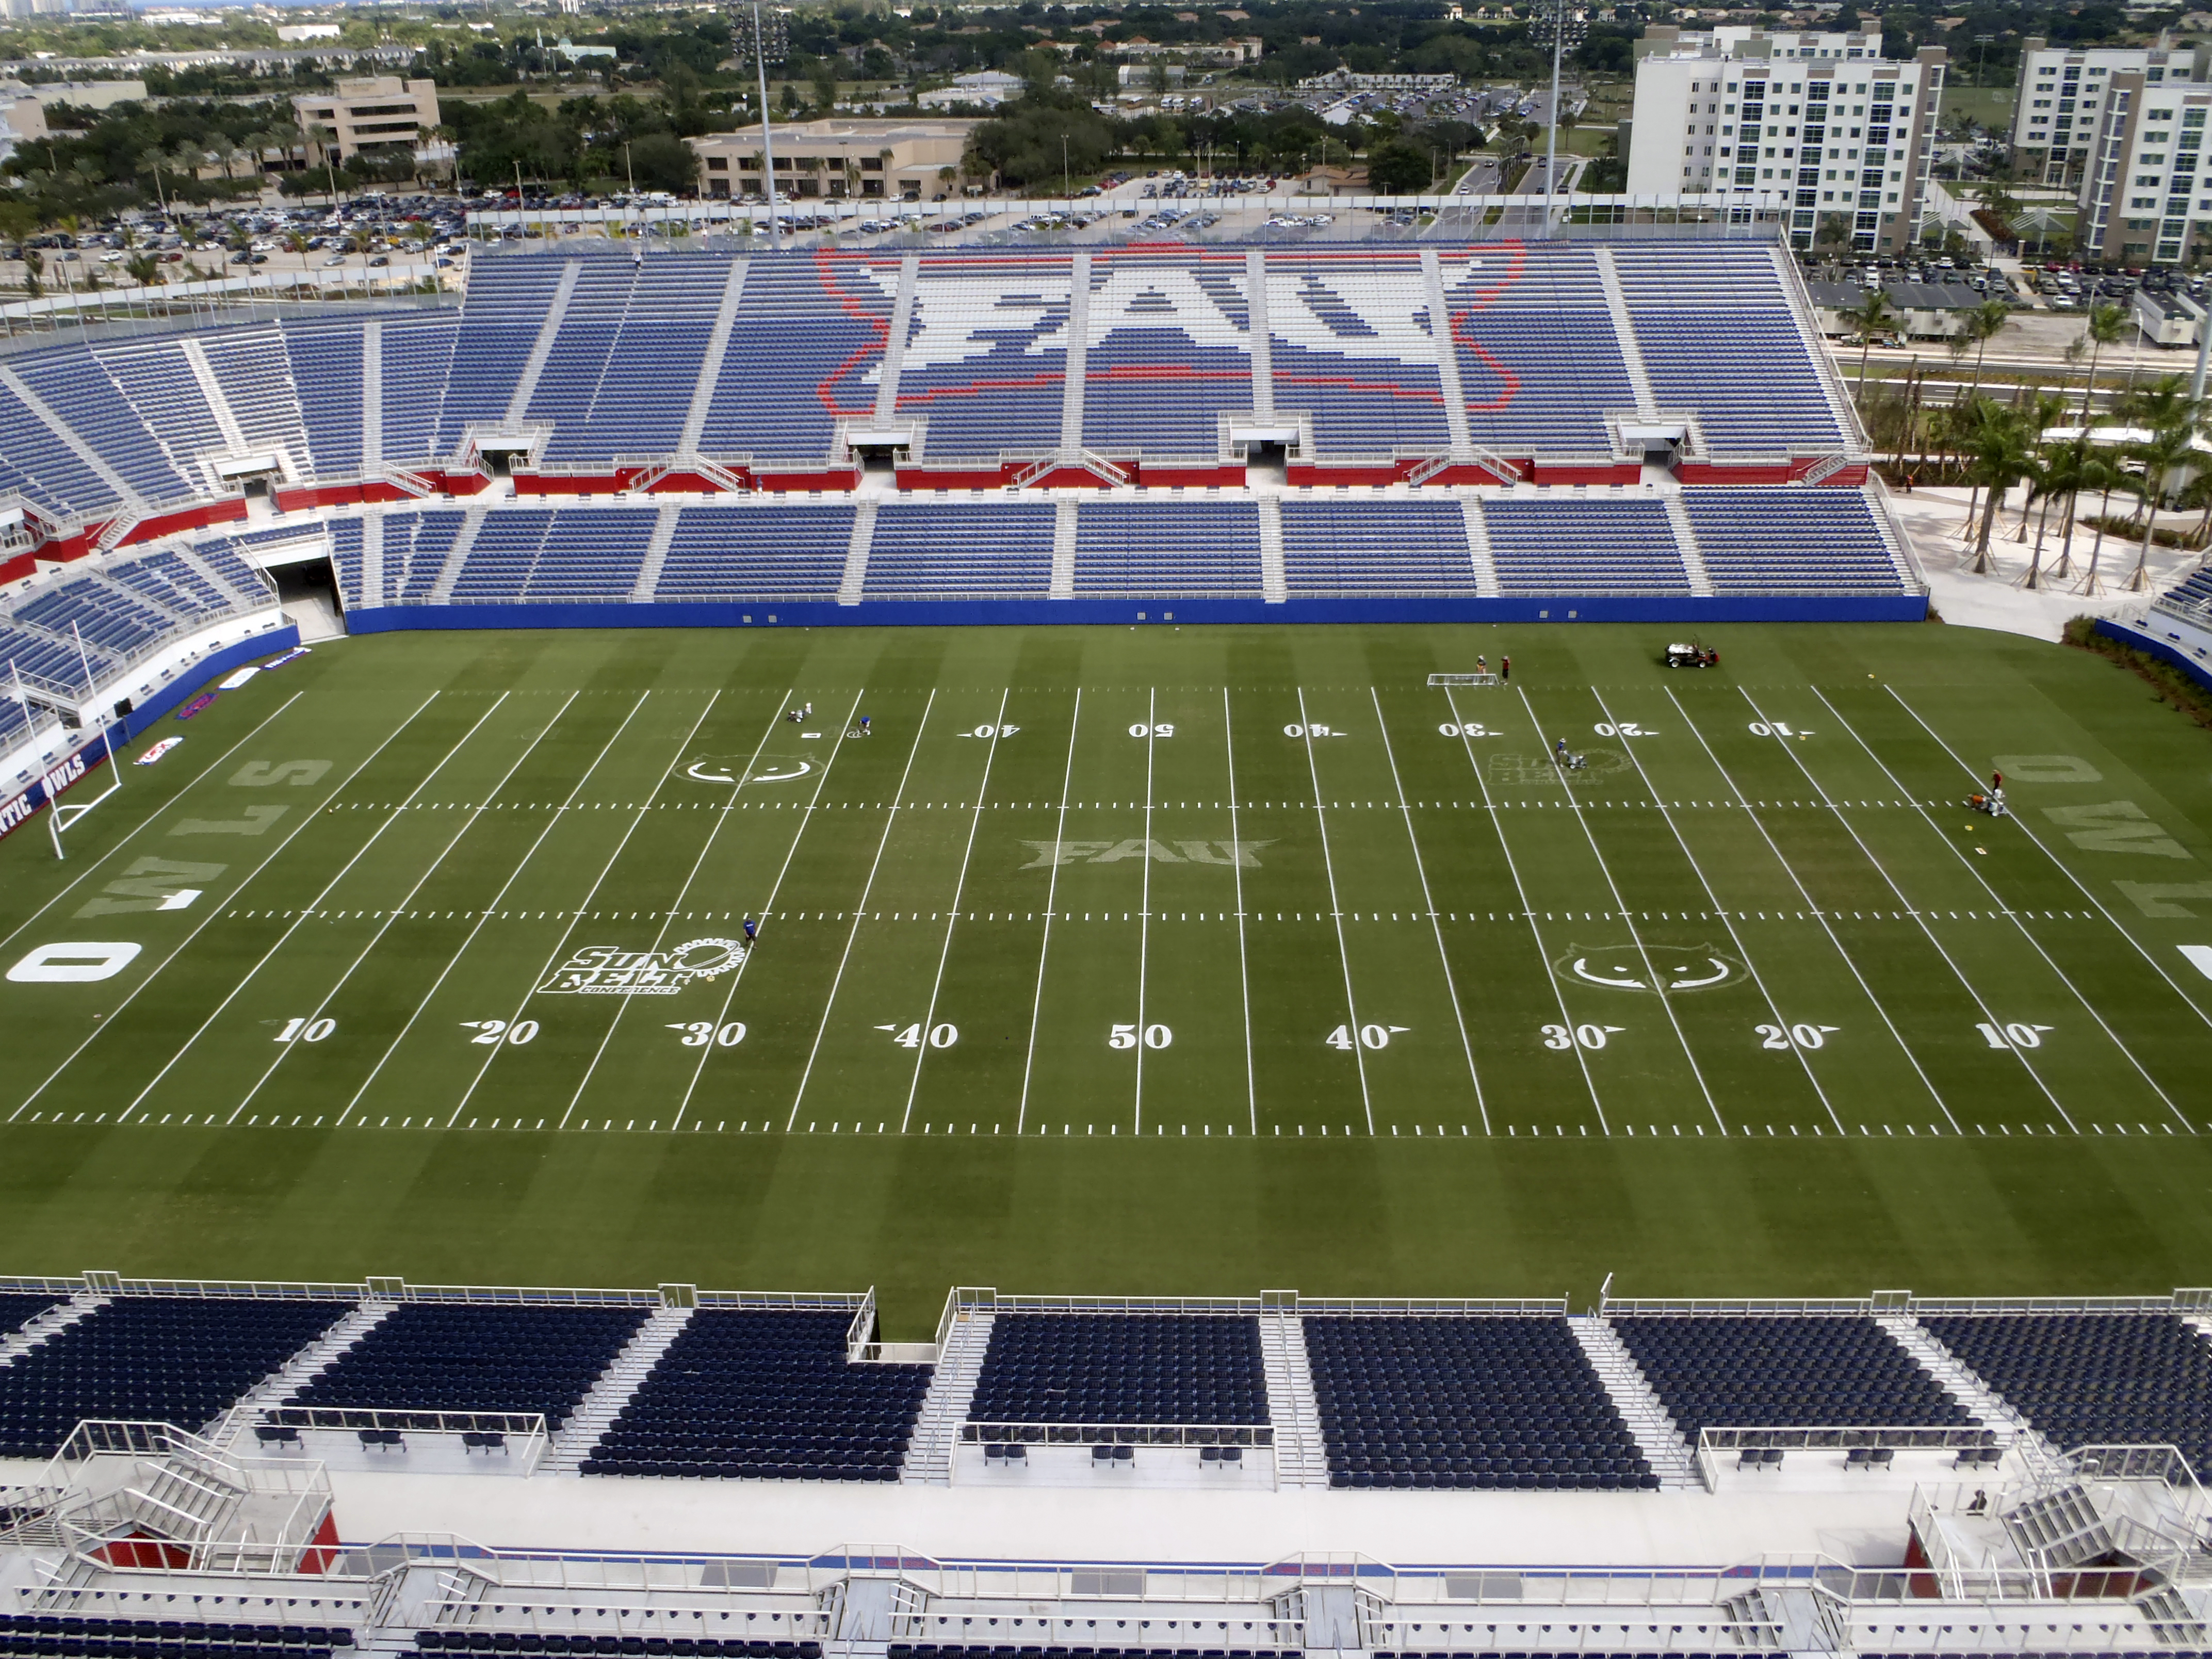 FAU Stadium, the home of the 2012 MLL All-Star Game.